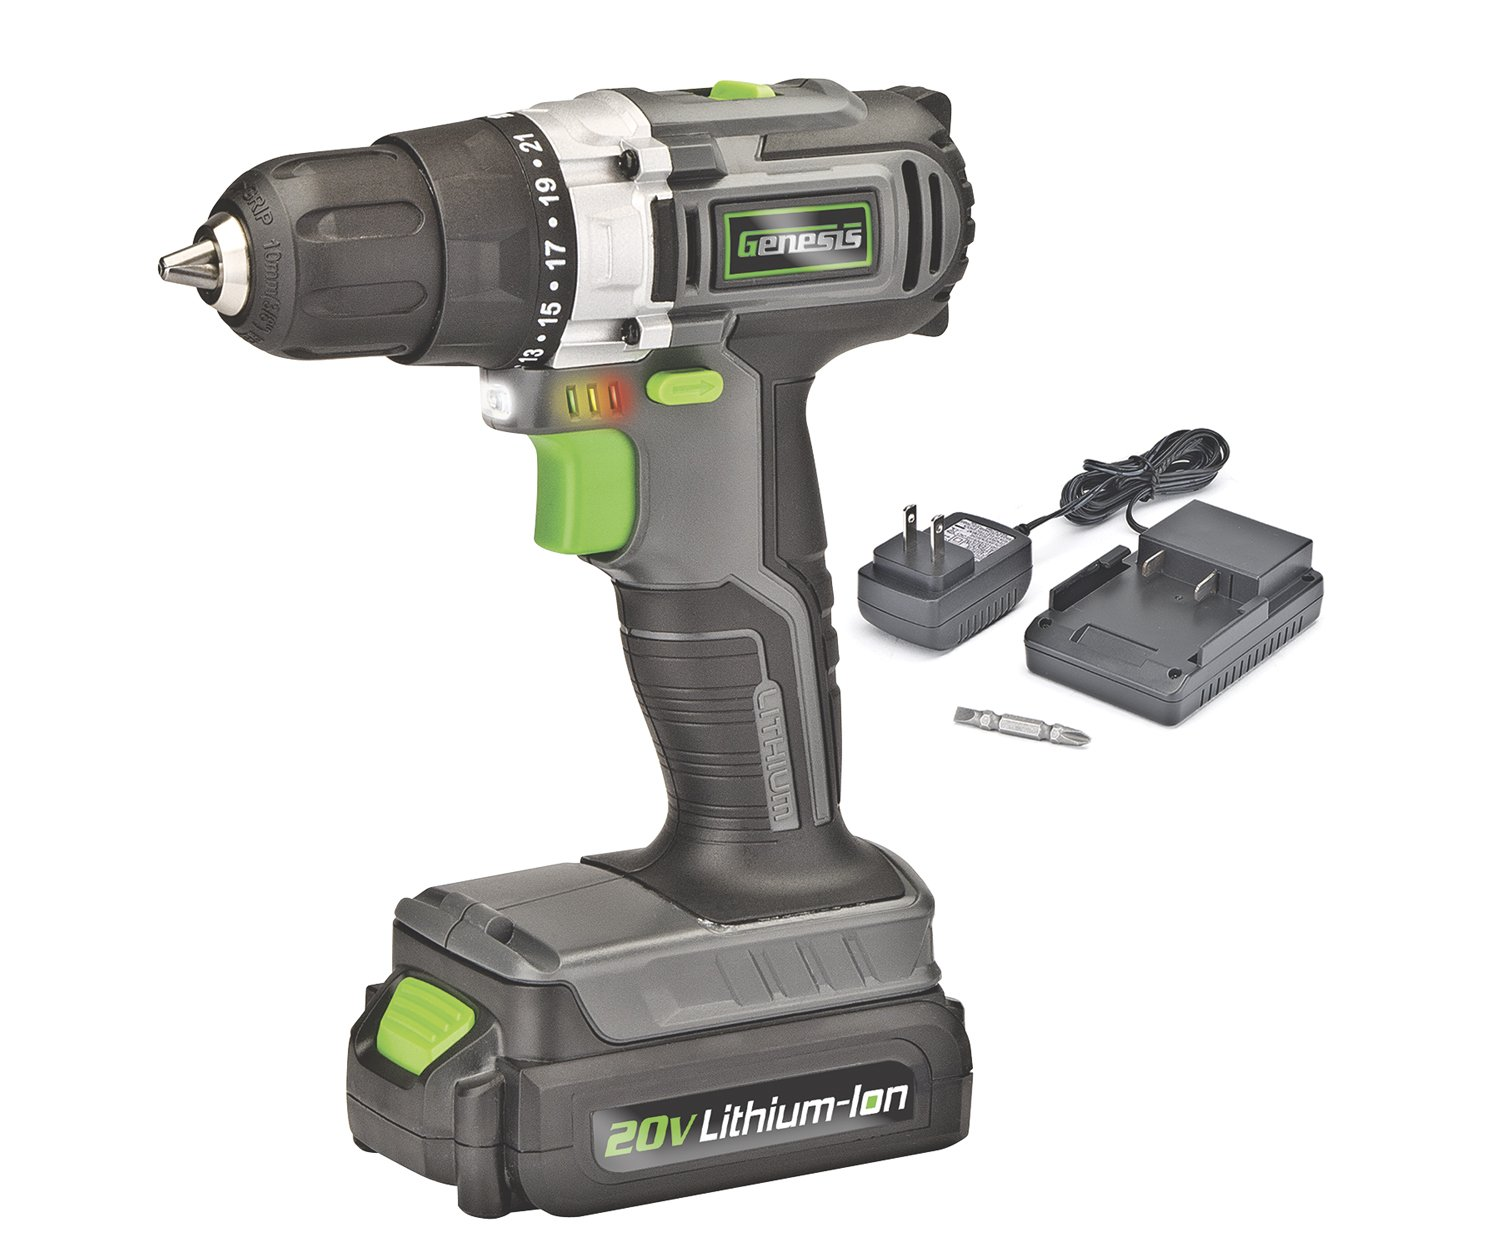 Genesis GLCD2038A 20V Lithium-ion Cordless Drill Driver, Grey/Black/Green, 3/8''